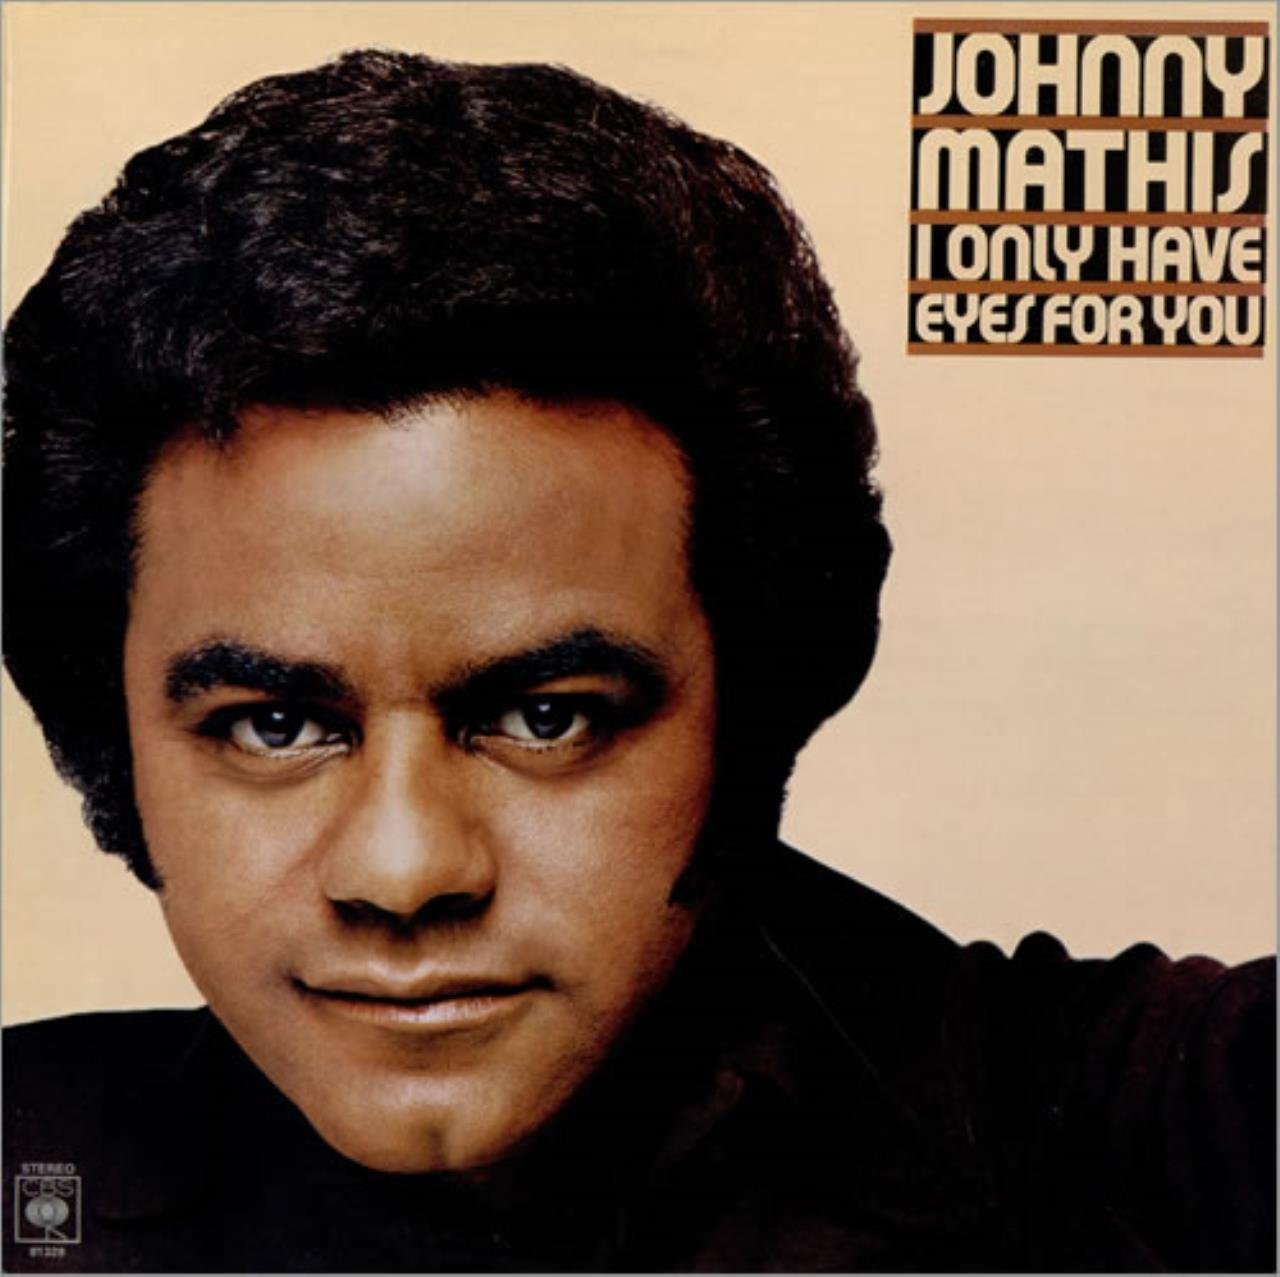 Johnny Mathis - I Only Have Eyes for You - Amazon.com Music